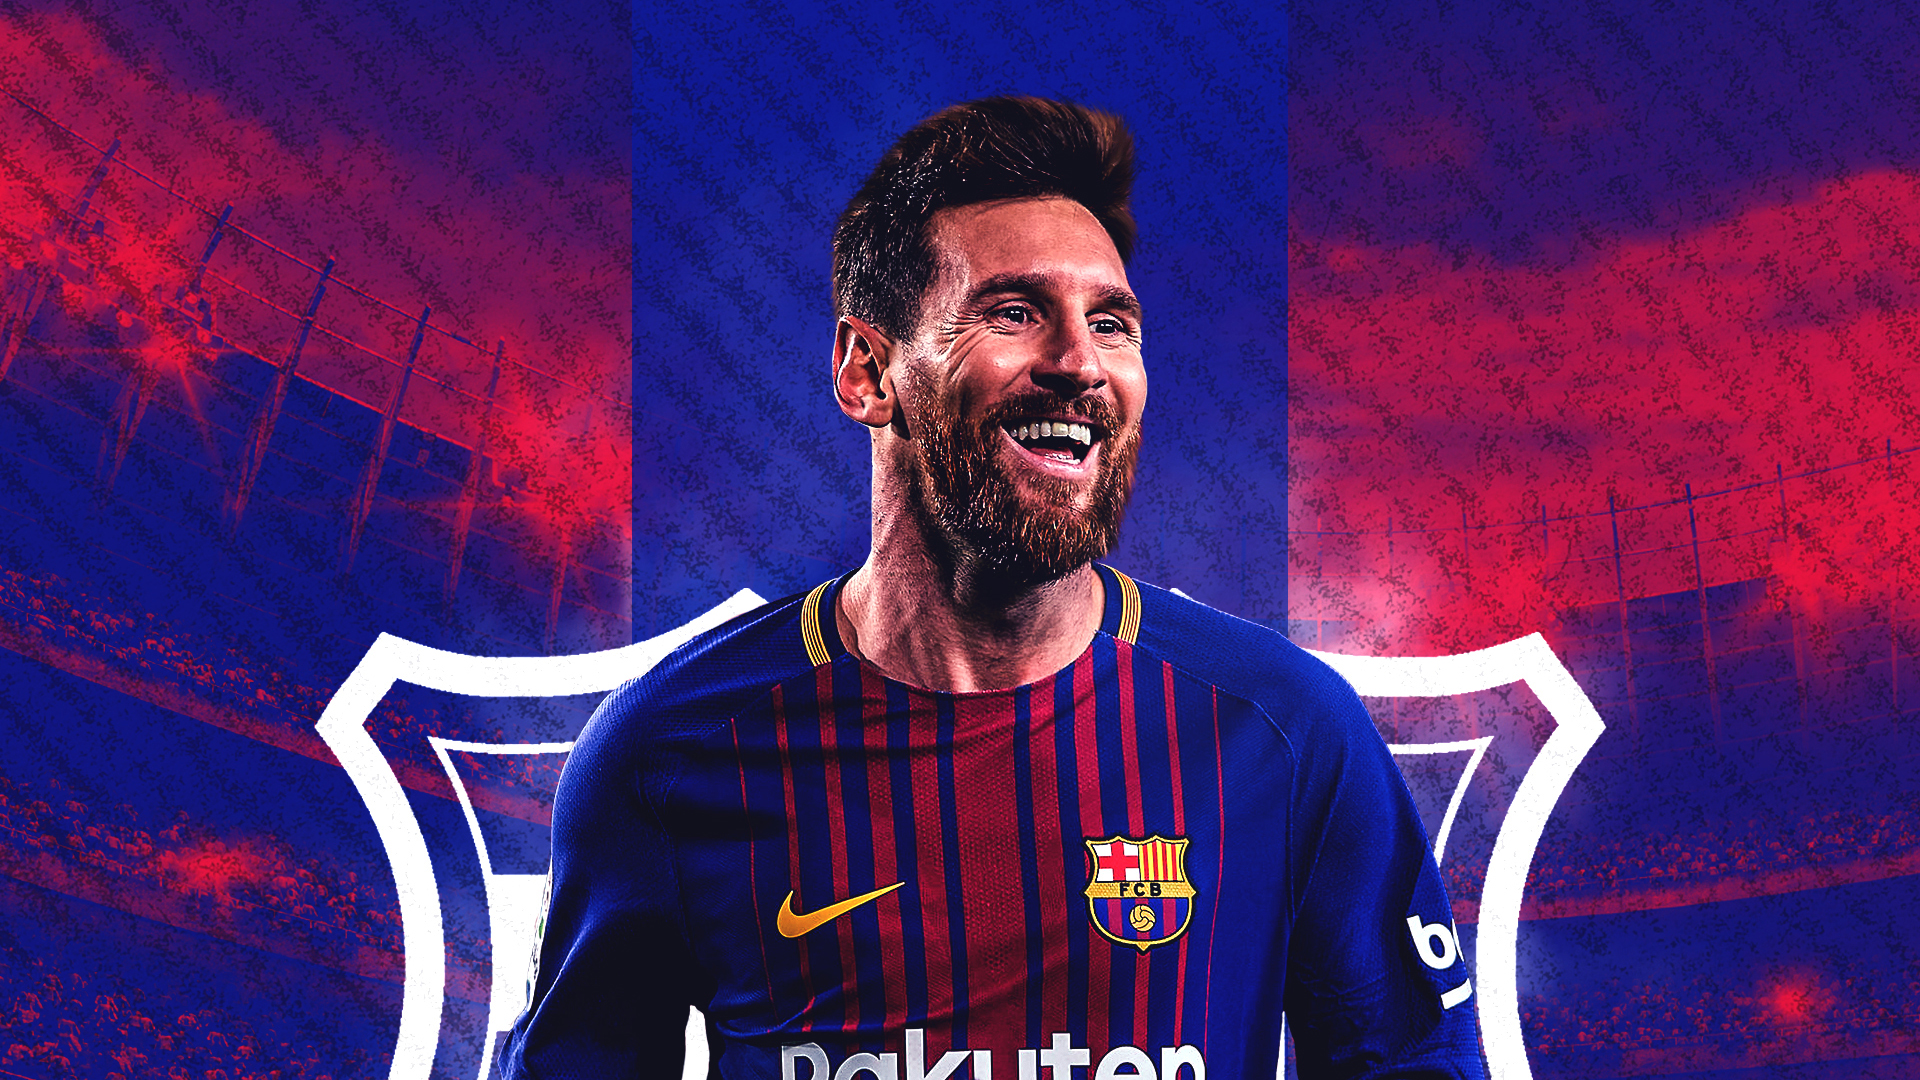 Lebron James Wallpaper Hd >> Lionel Messi Wallpapers | HD Wallpapers